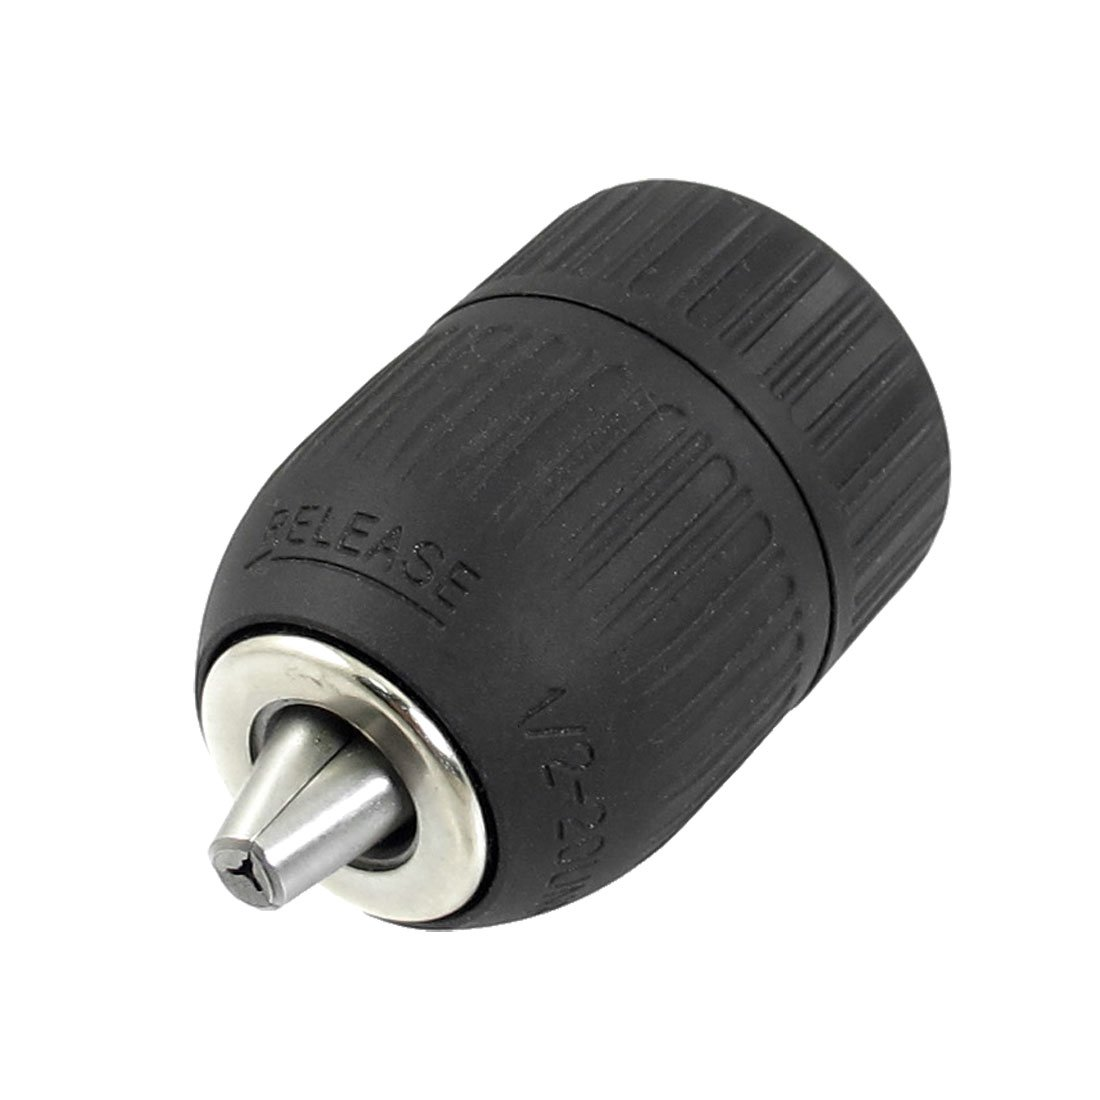 uxcell 1/2-20 UNF Mount 2-13mm Capacity Keyless Drill Chuck Black by uxcell (Image #1)